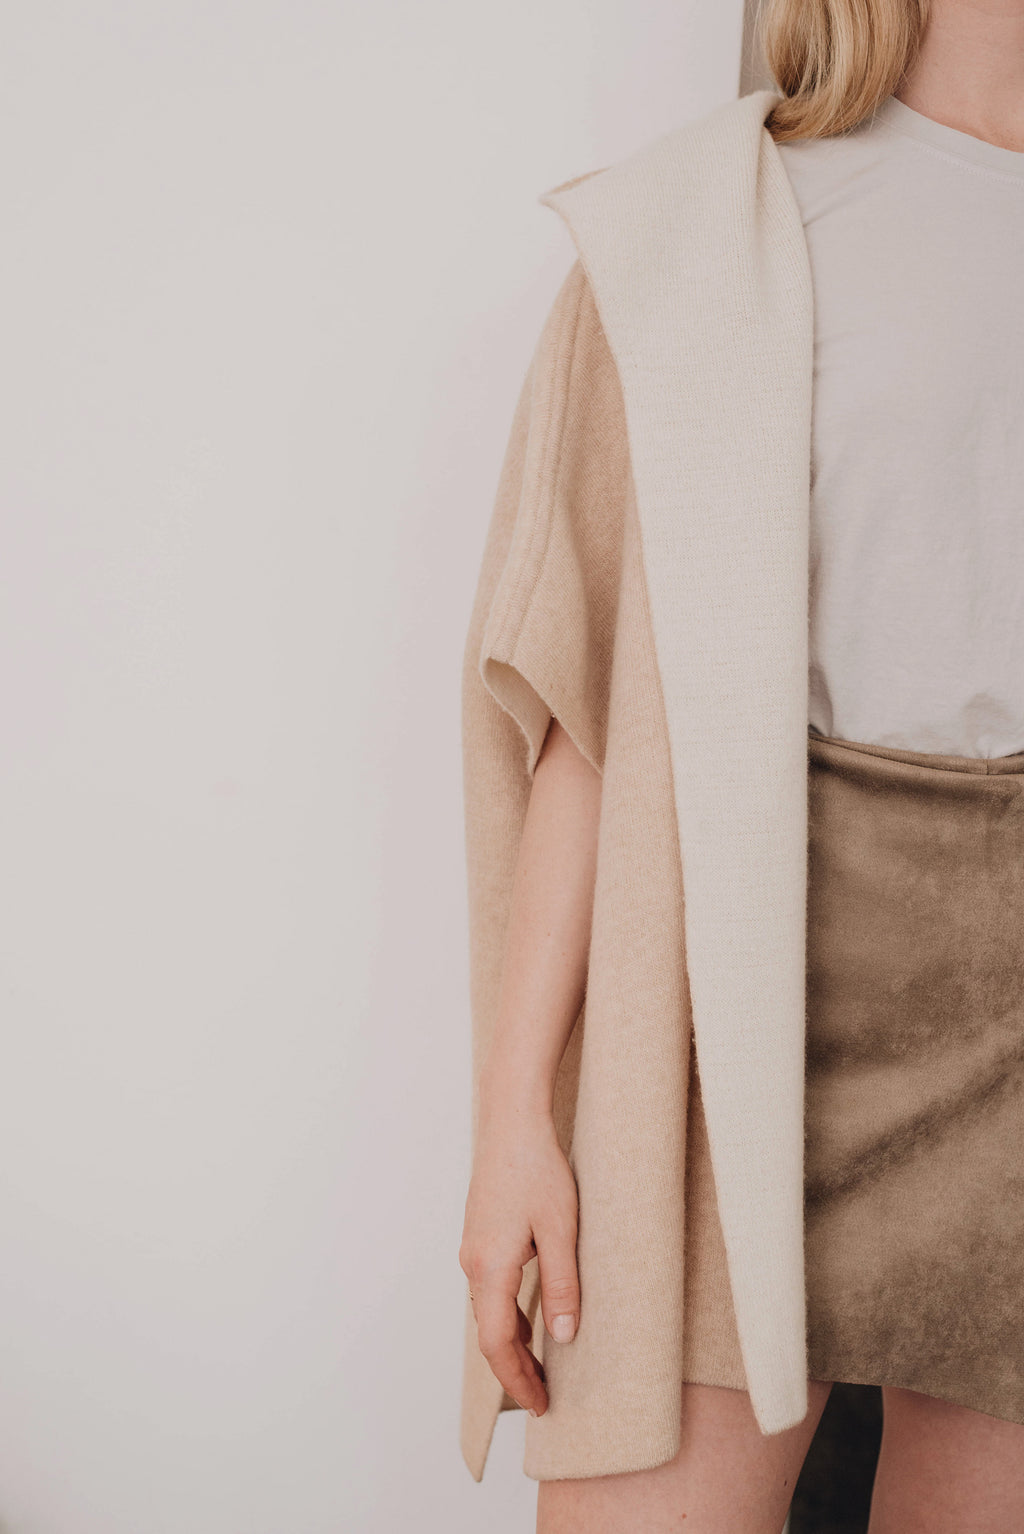 Hooded Poncho - Beige/Ivory